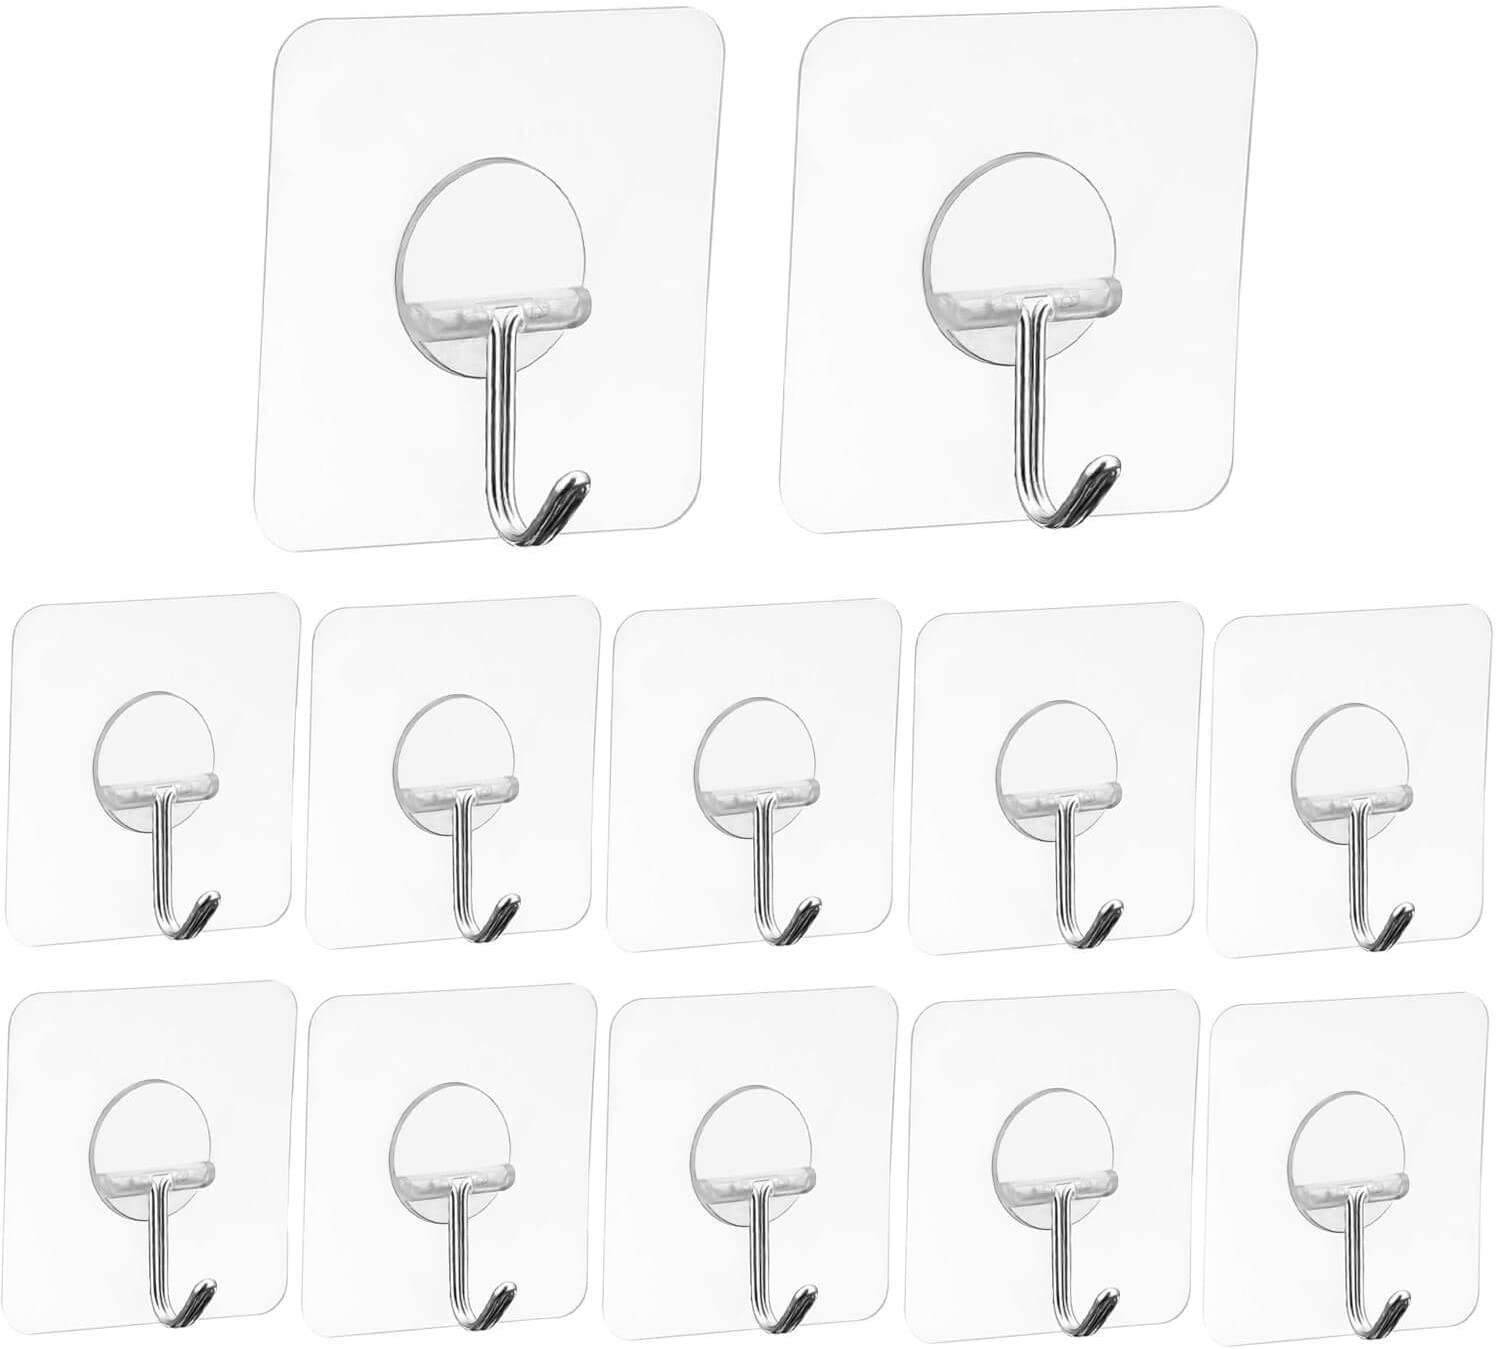 Adhesive Hooks Heavy Duty Wall Hooks 44 lb/ 20 kg(Max), Waterproof and Oilproof Seamless Hooks for Hanging Pictures, Bathroom, Bedroom, Kitchen, Refrigerator Door, Wall and Robe Coat Towel (12 Pack)